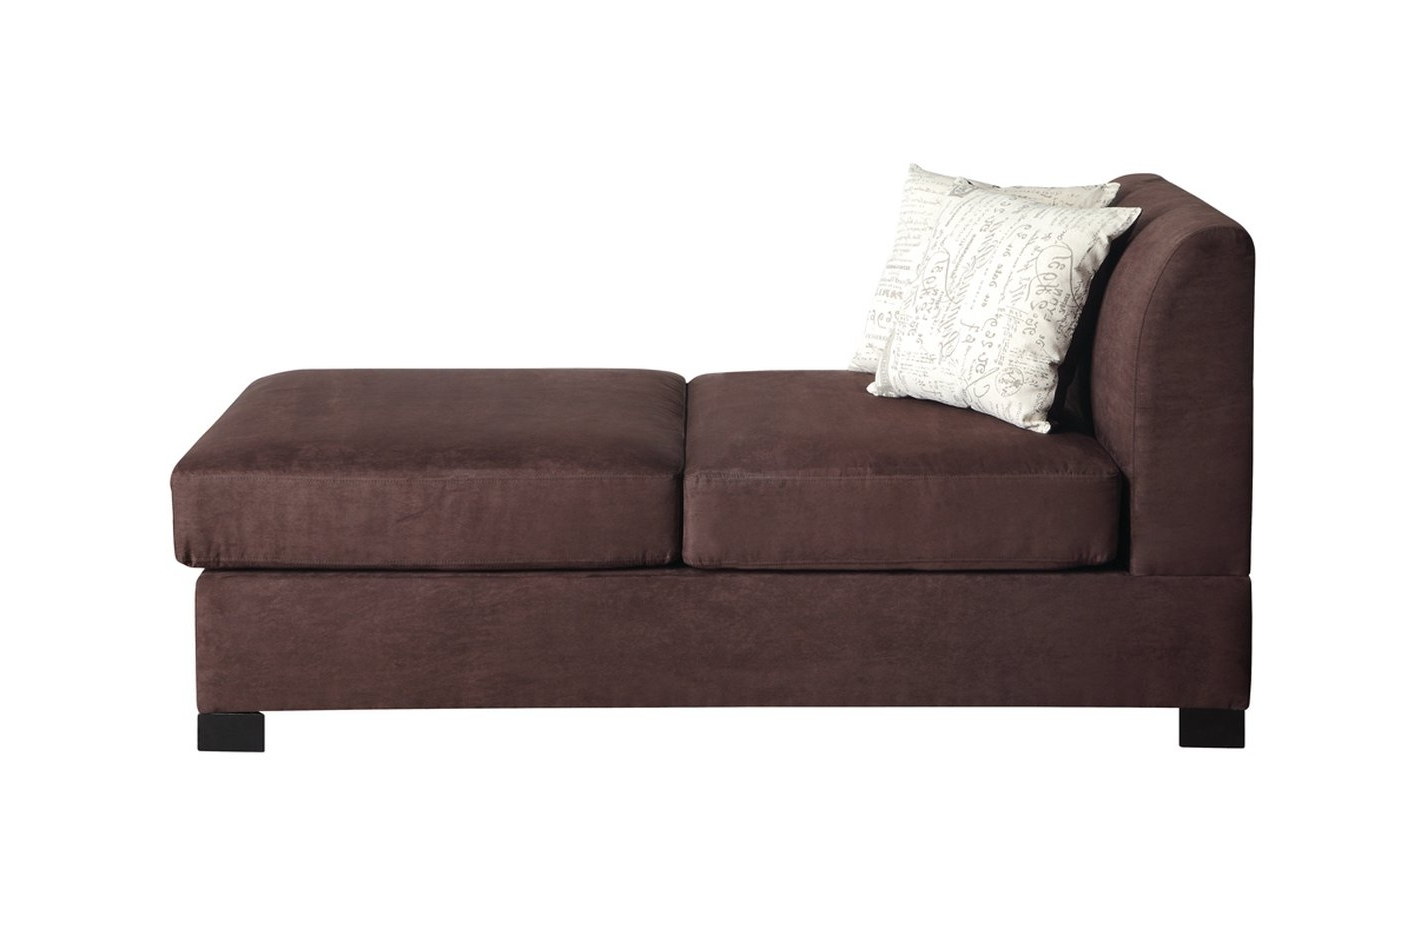 Popular Nia Brown Fabric Chaise Lounge – Steal A Sofa Furniture Outlet Los Within Loveseat Chaise Lounges (View 10 of 15)